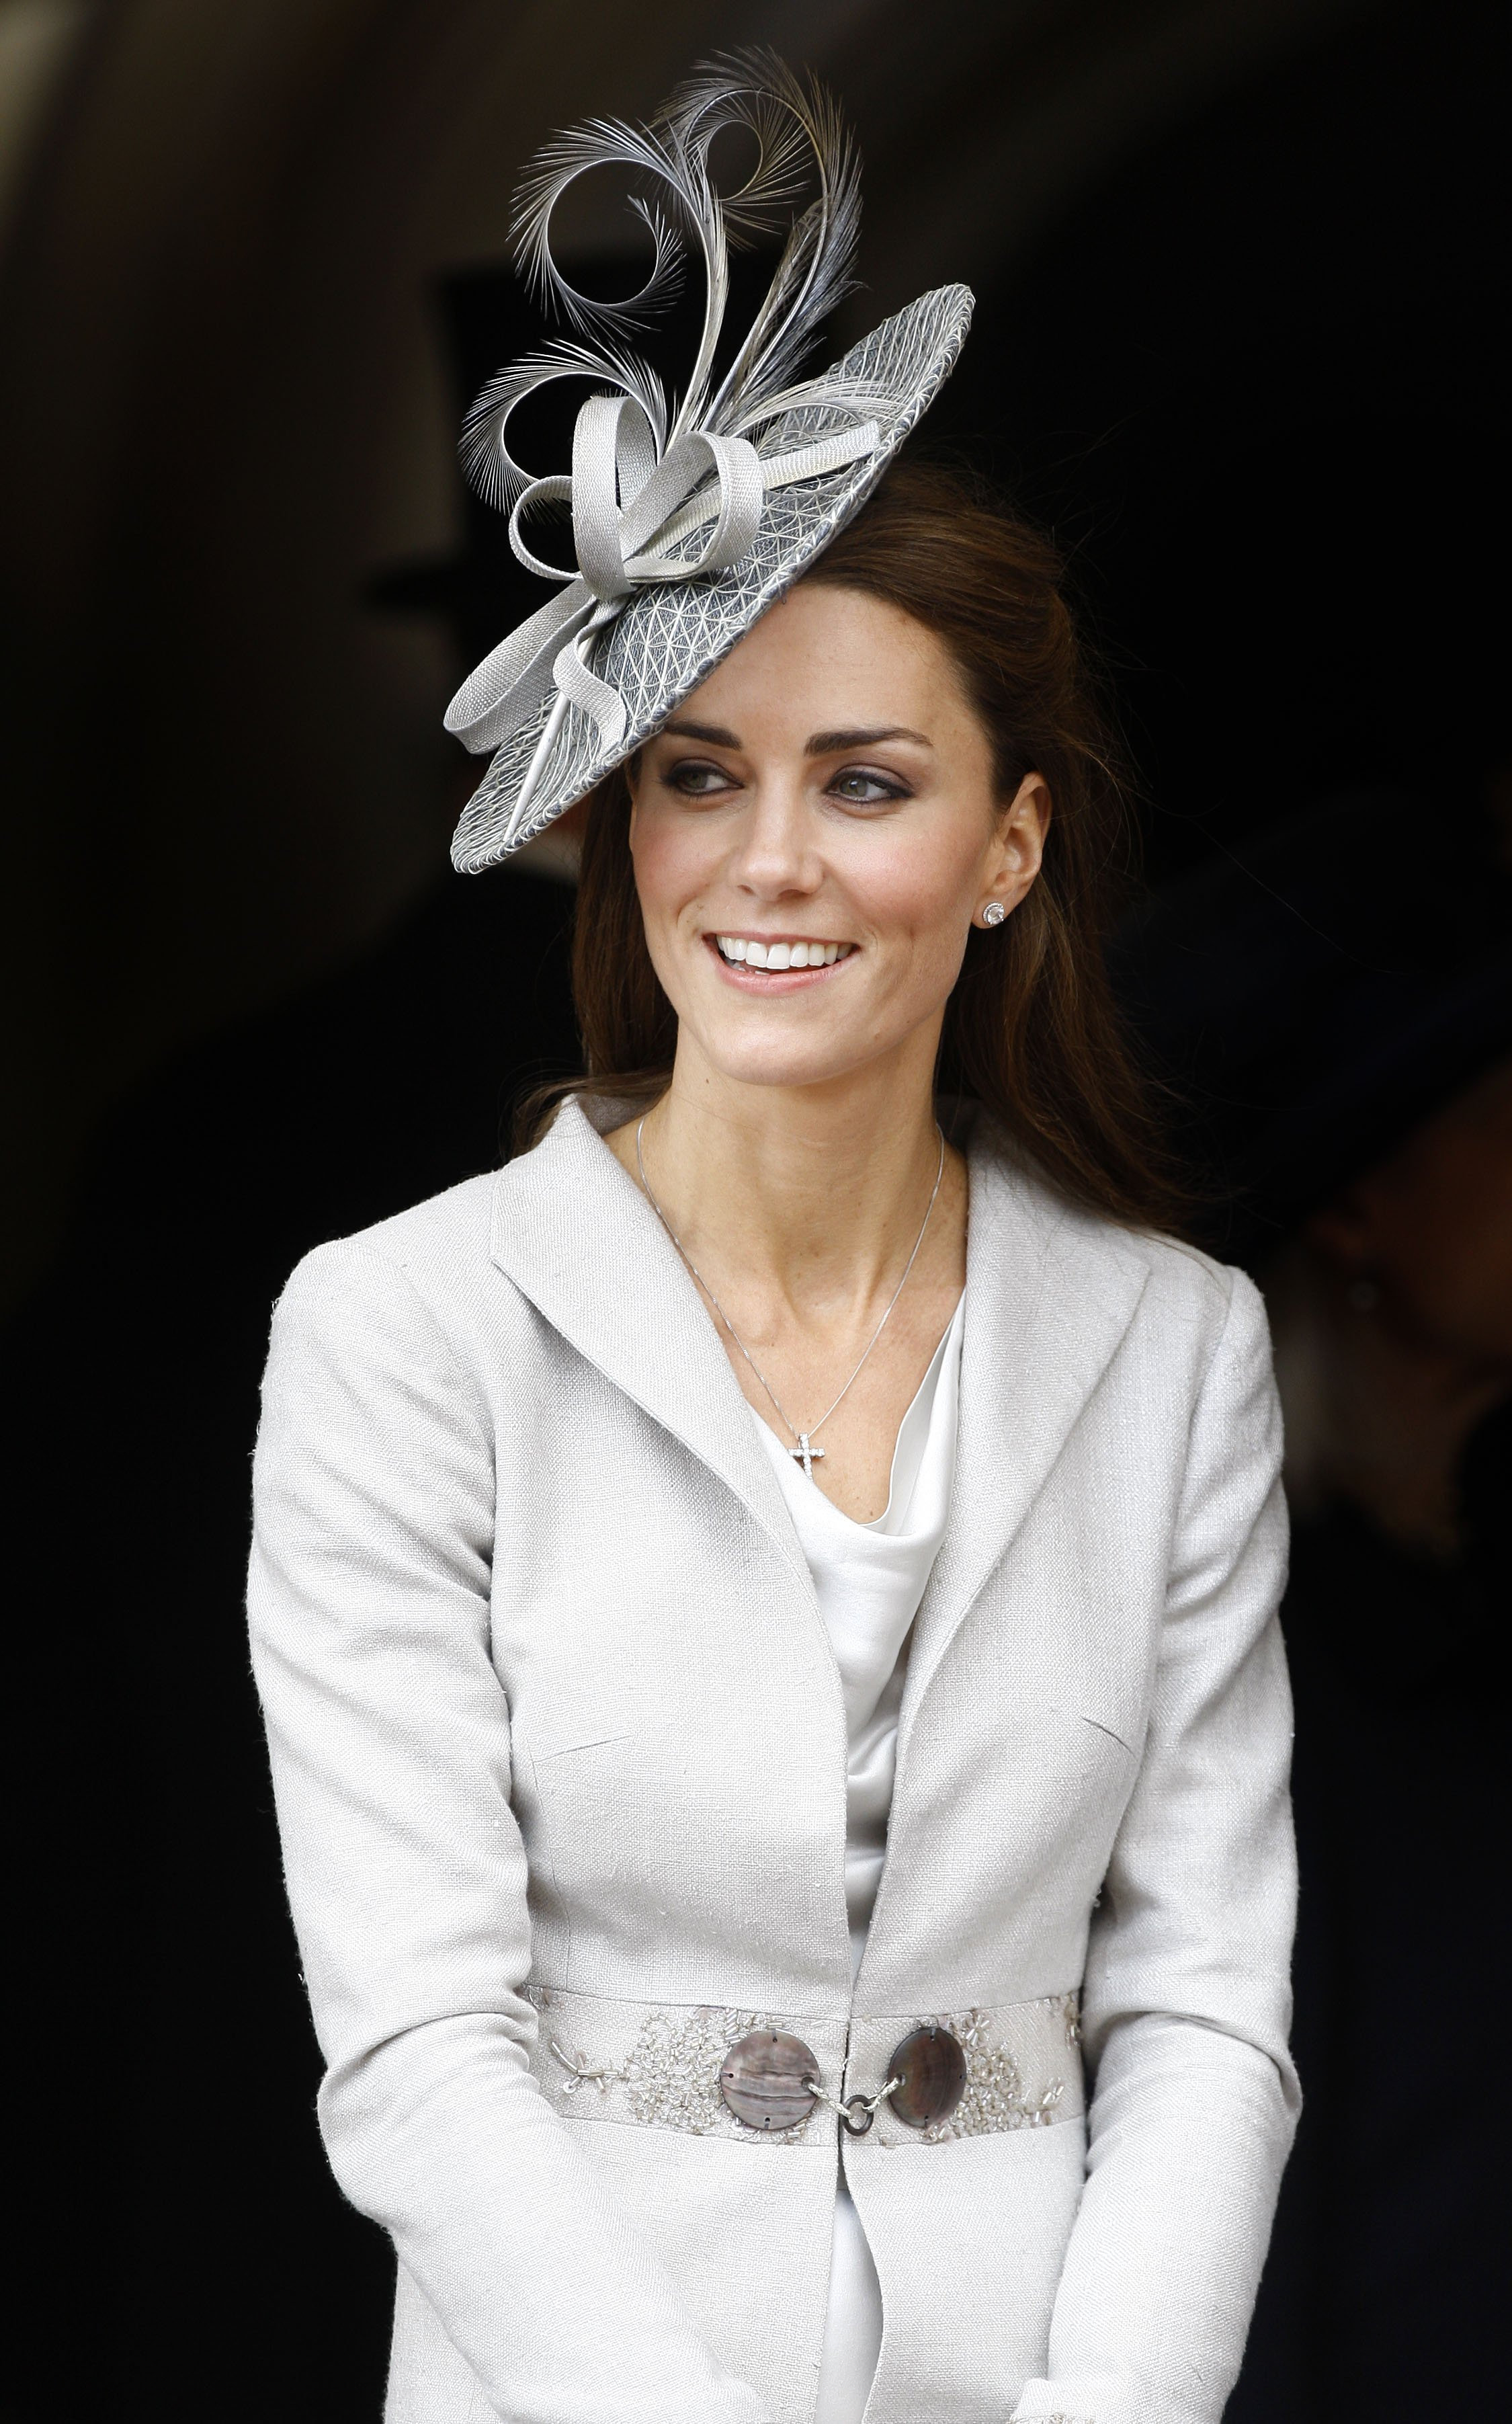 Kate Middleton at the 2011 Order of the Garter in Windsor, England | Photo: Getty Images